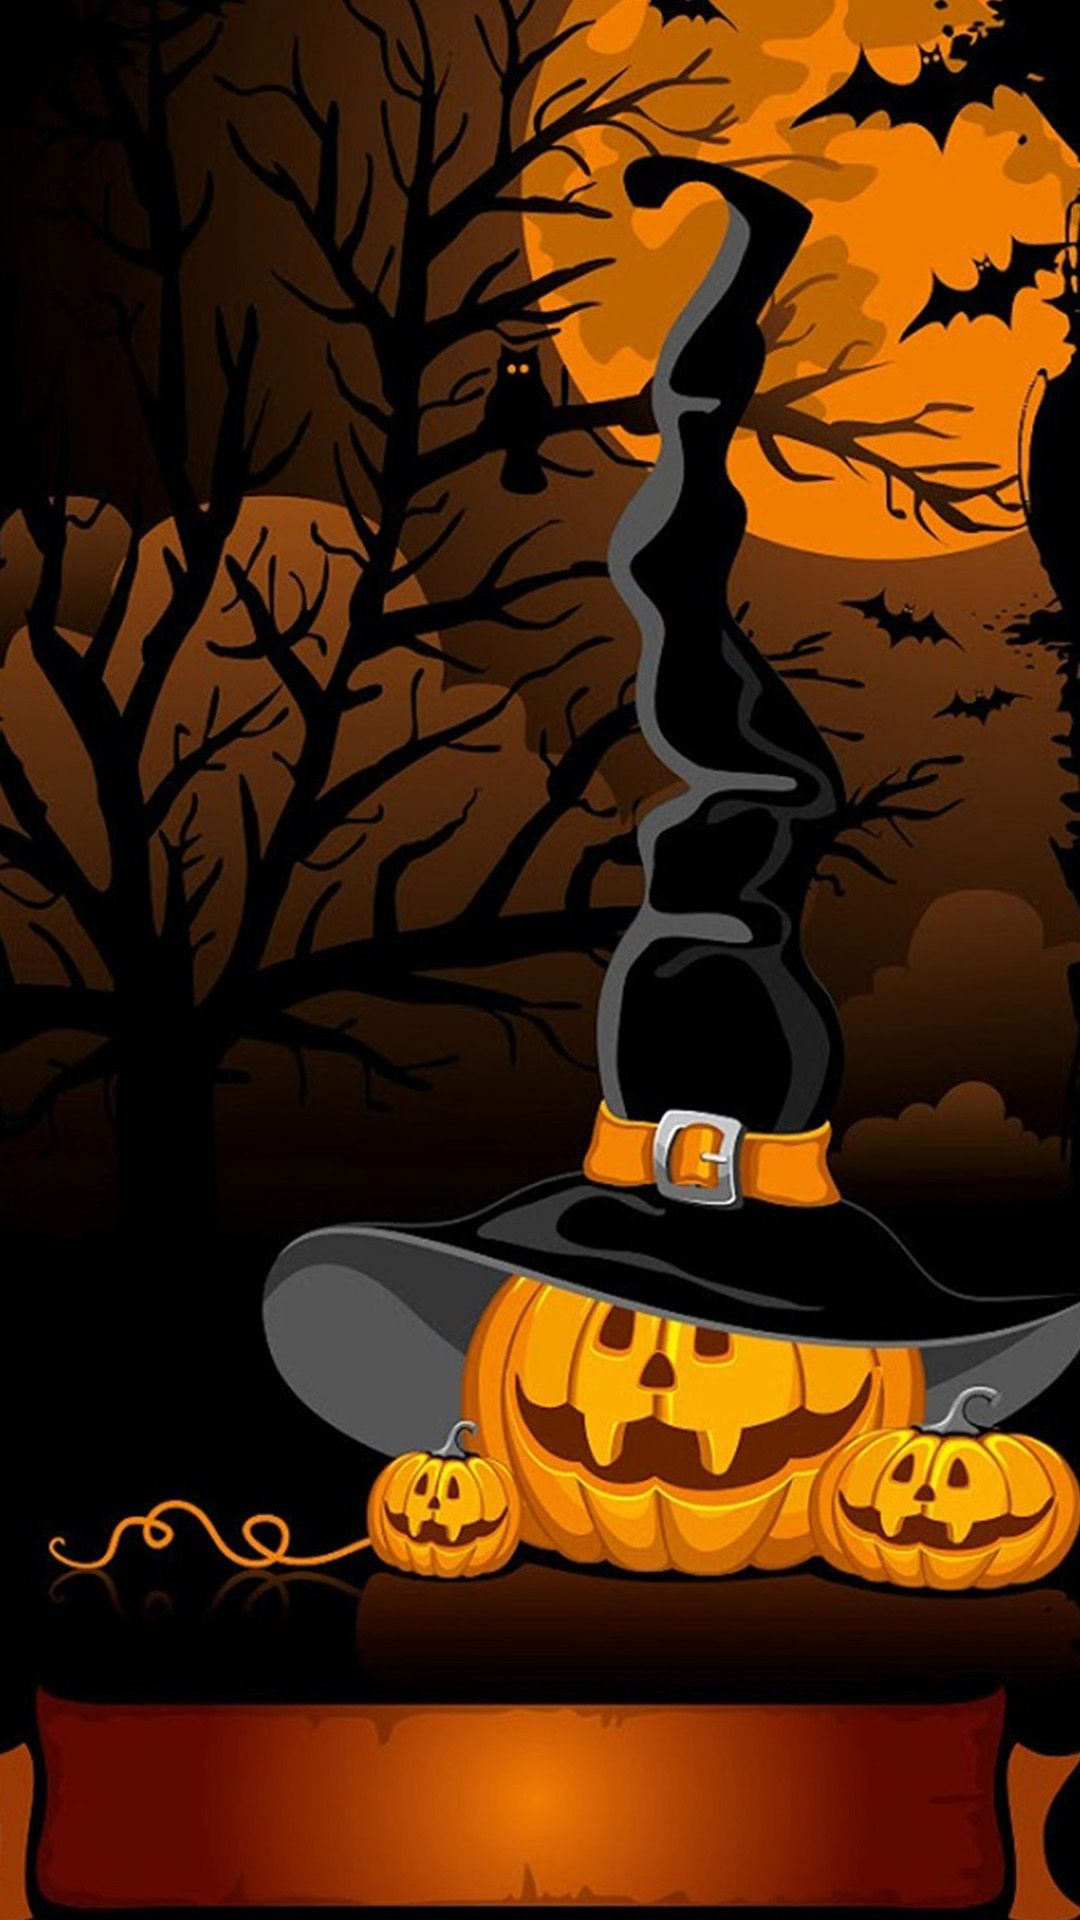 Halloween Wallpapers Witches Wallpapers For Halloween